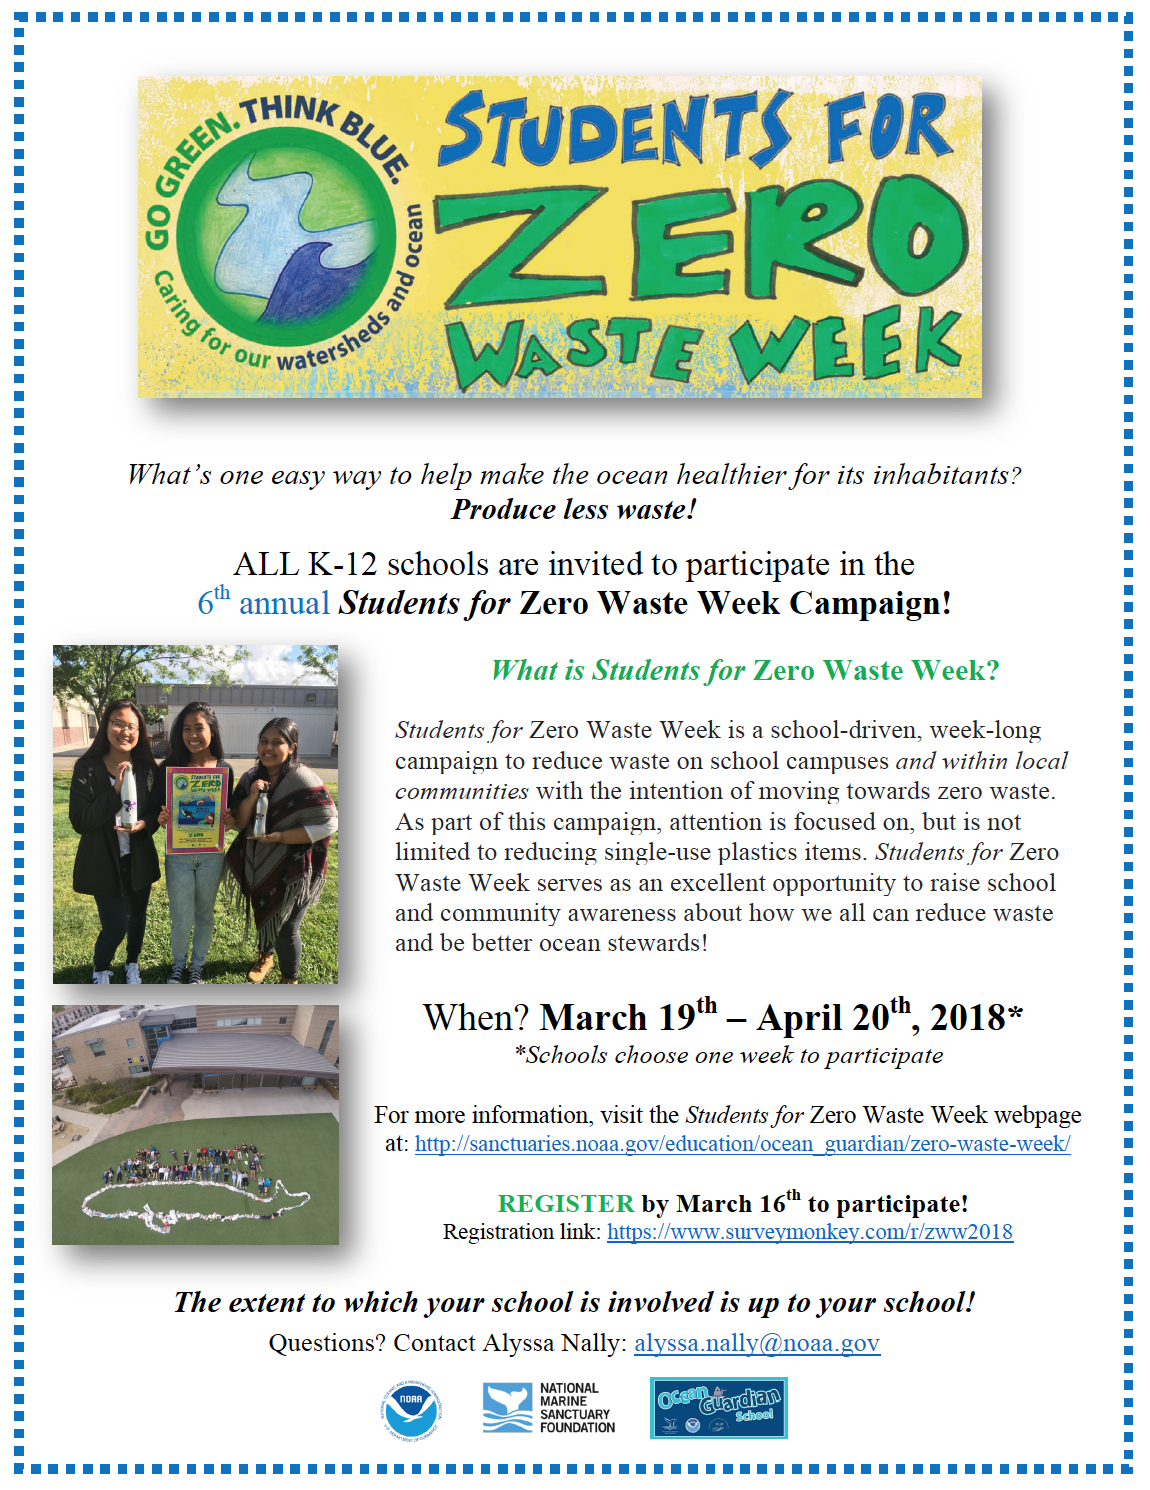 Students For Zero Waste Week 2018: Register By March 16th!